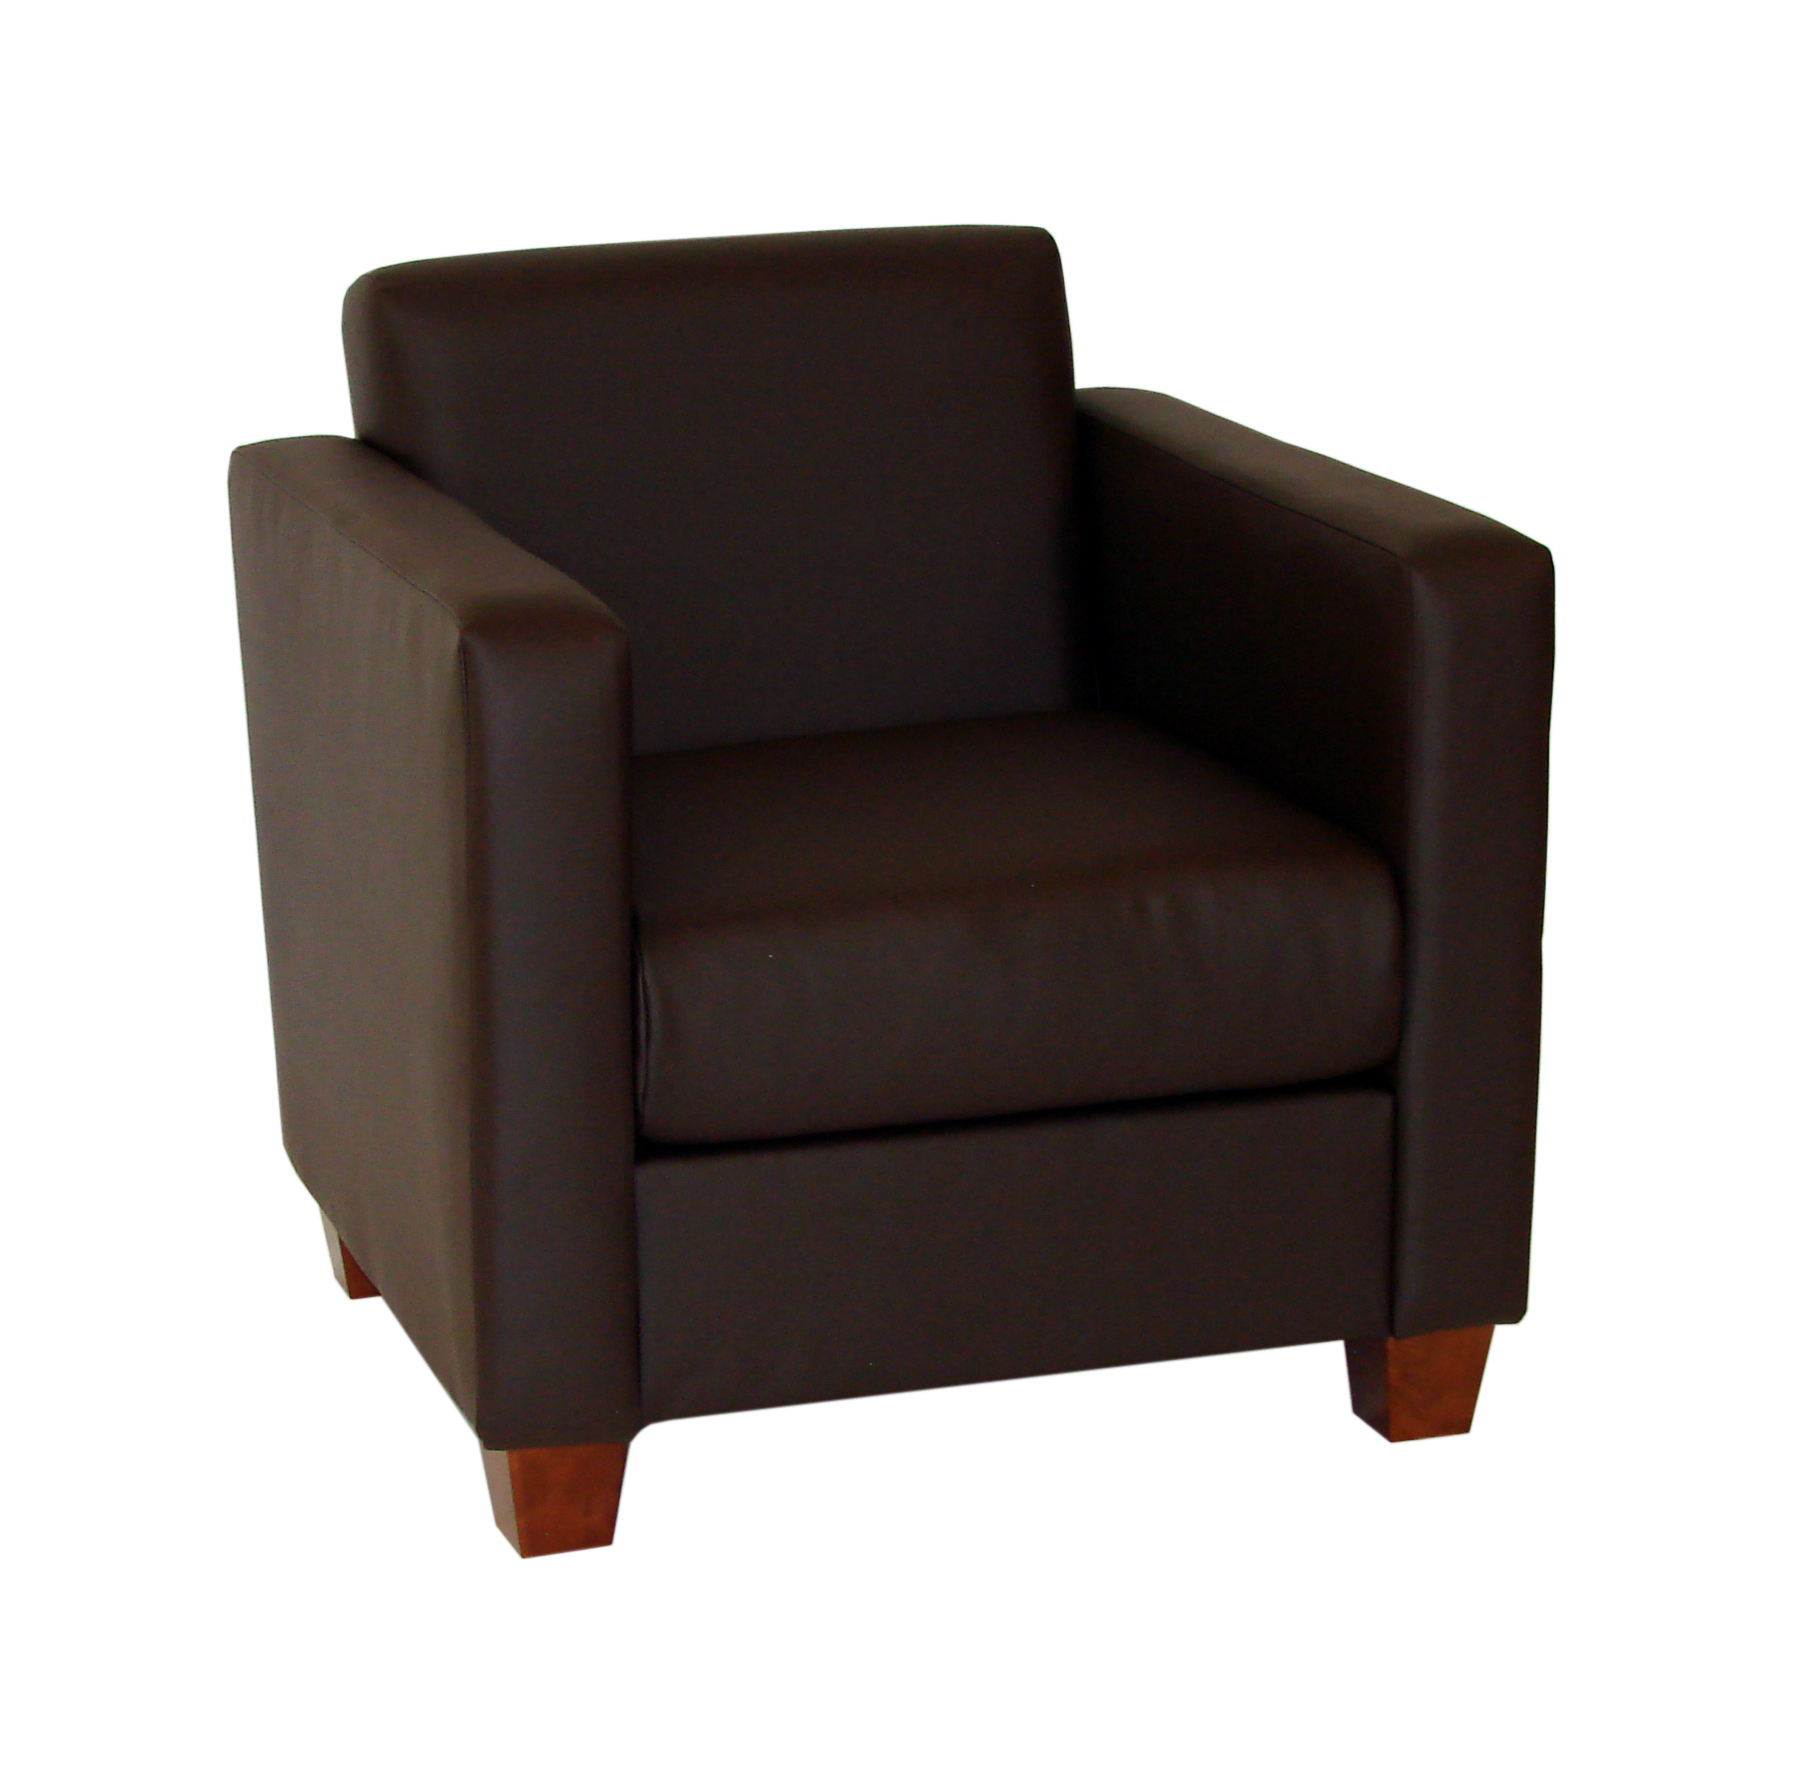 Connections armchair